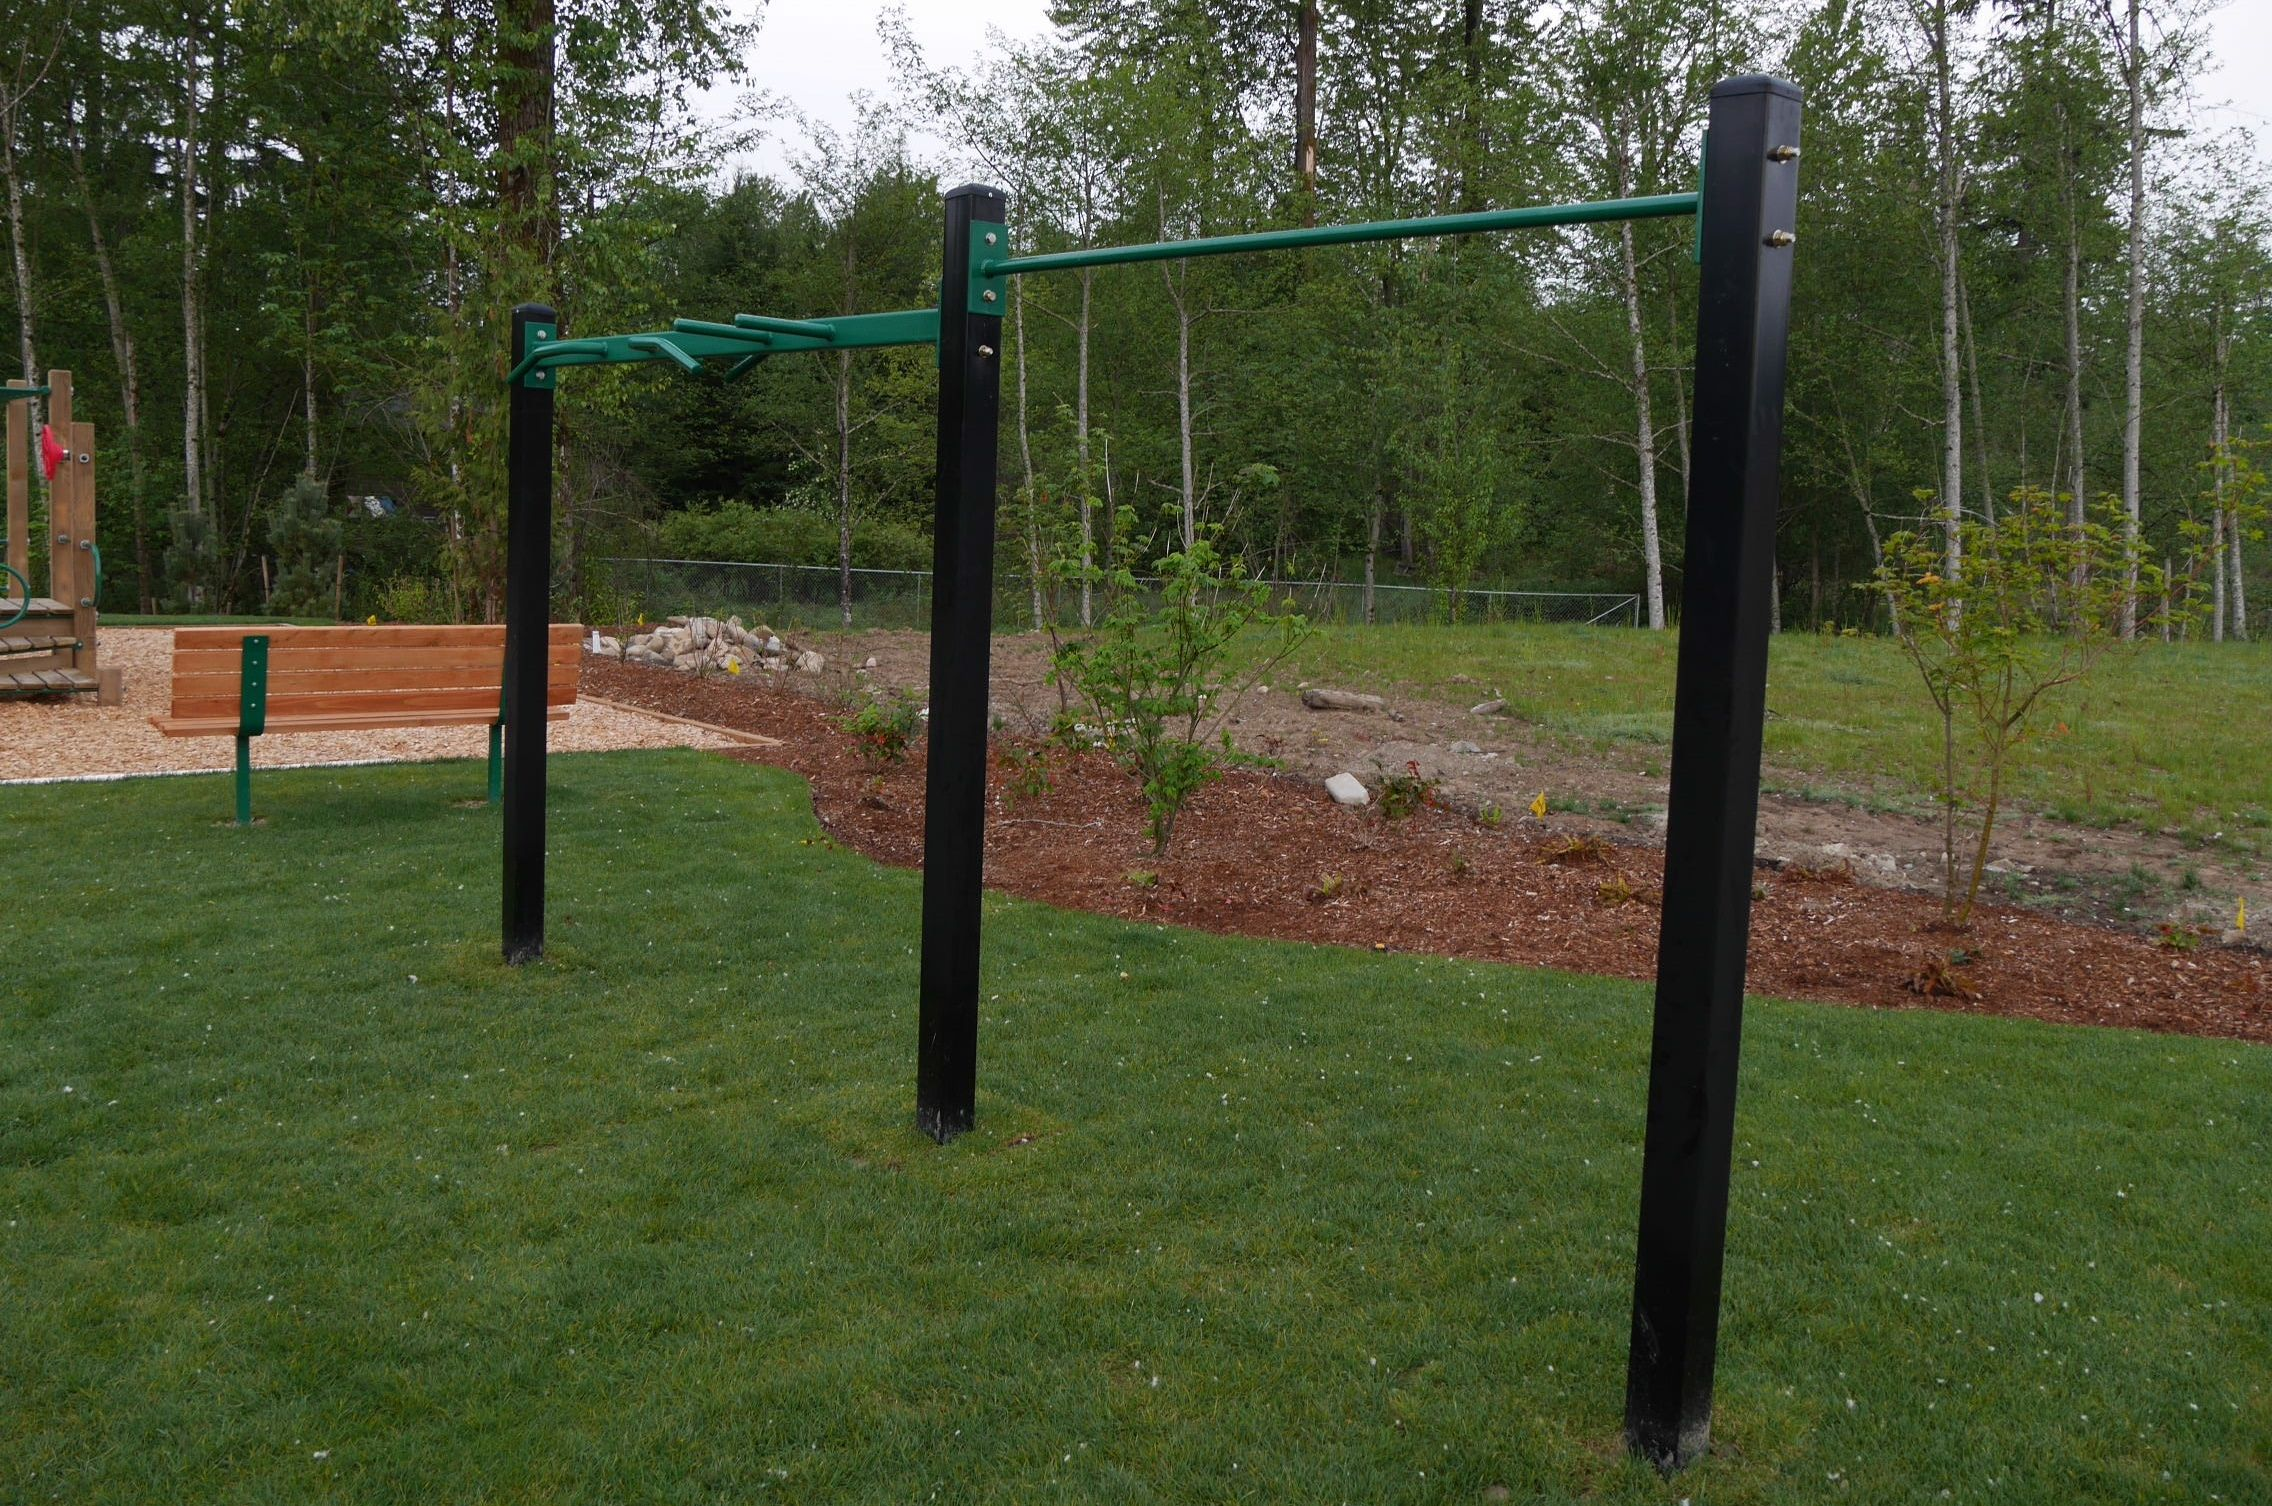 Stayfit Photos Outdoor Fitness Equipment Outdoor Workouts No Equipment Workout